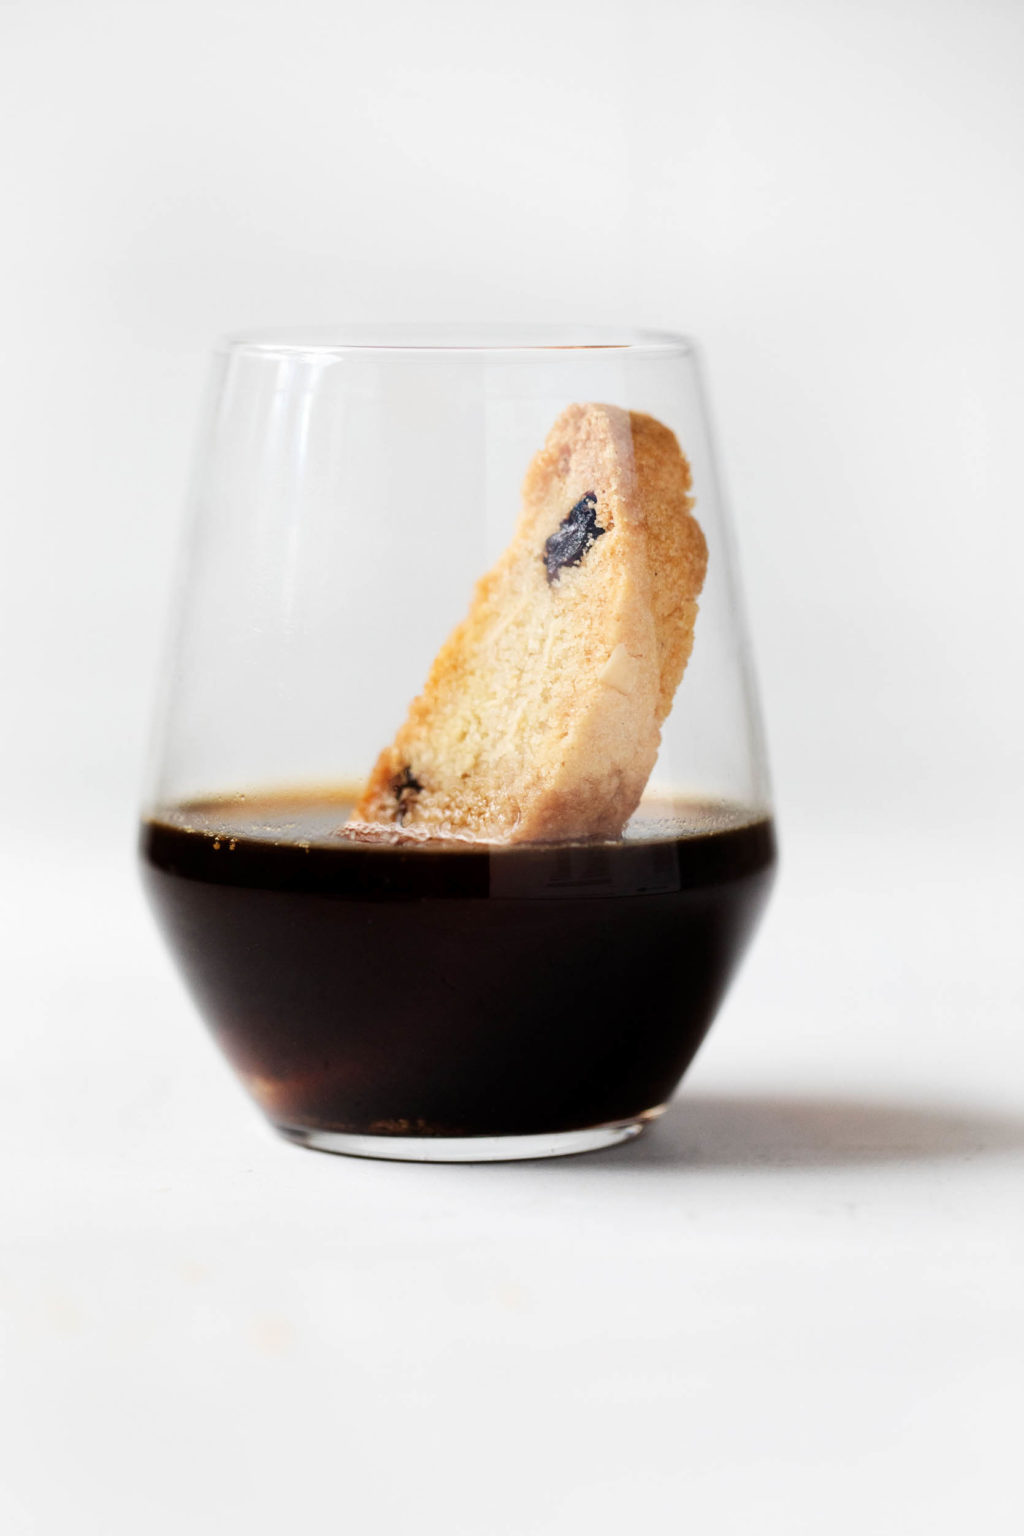 A clear glass of black coffee, with a piece of biscotti dunked inside.